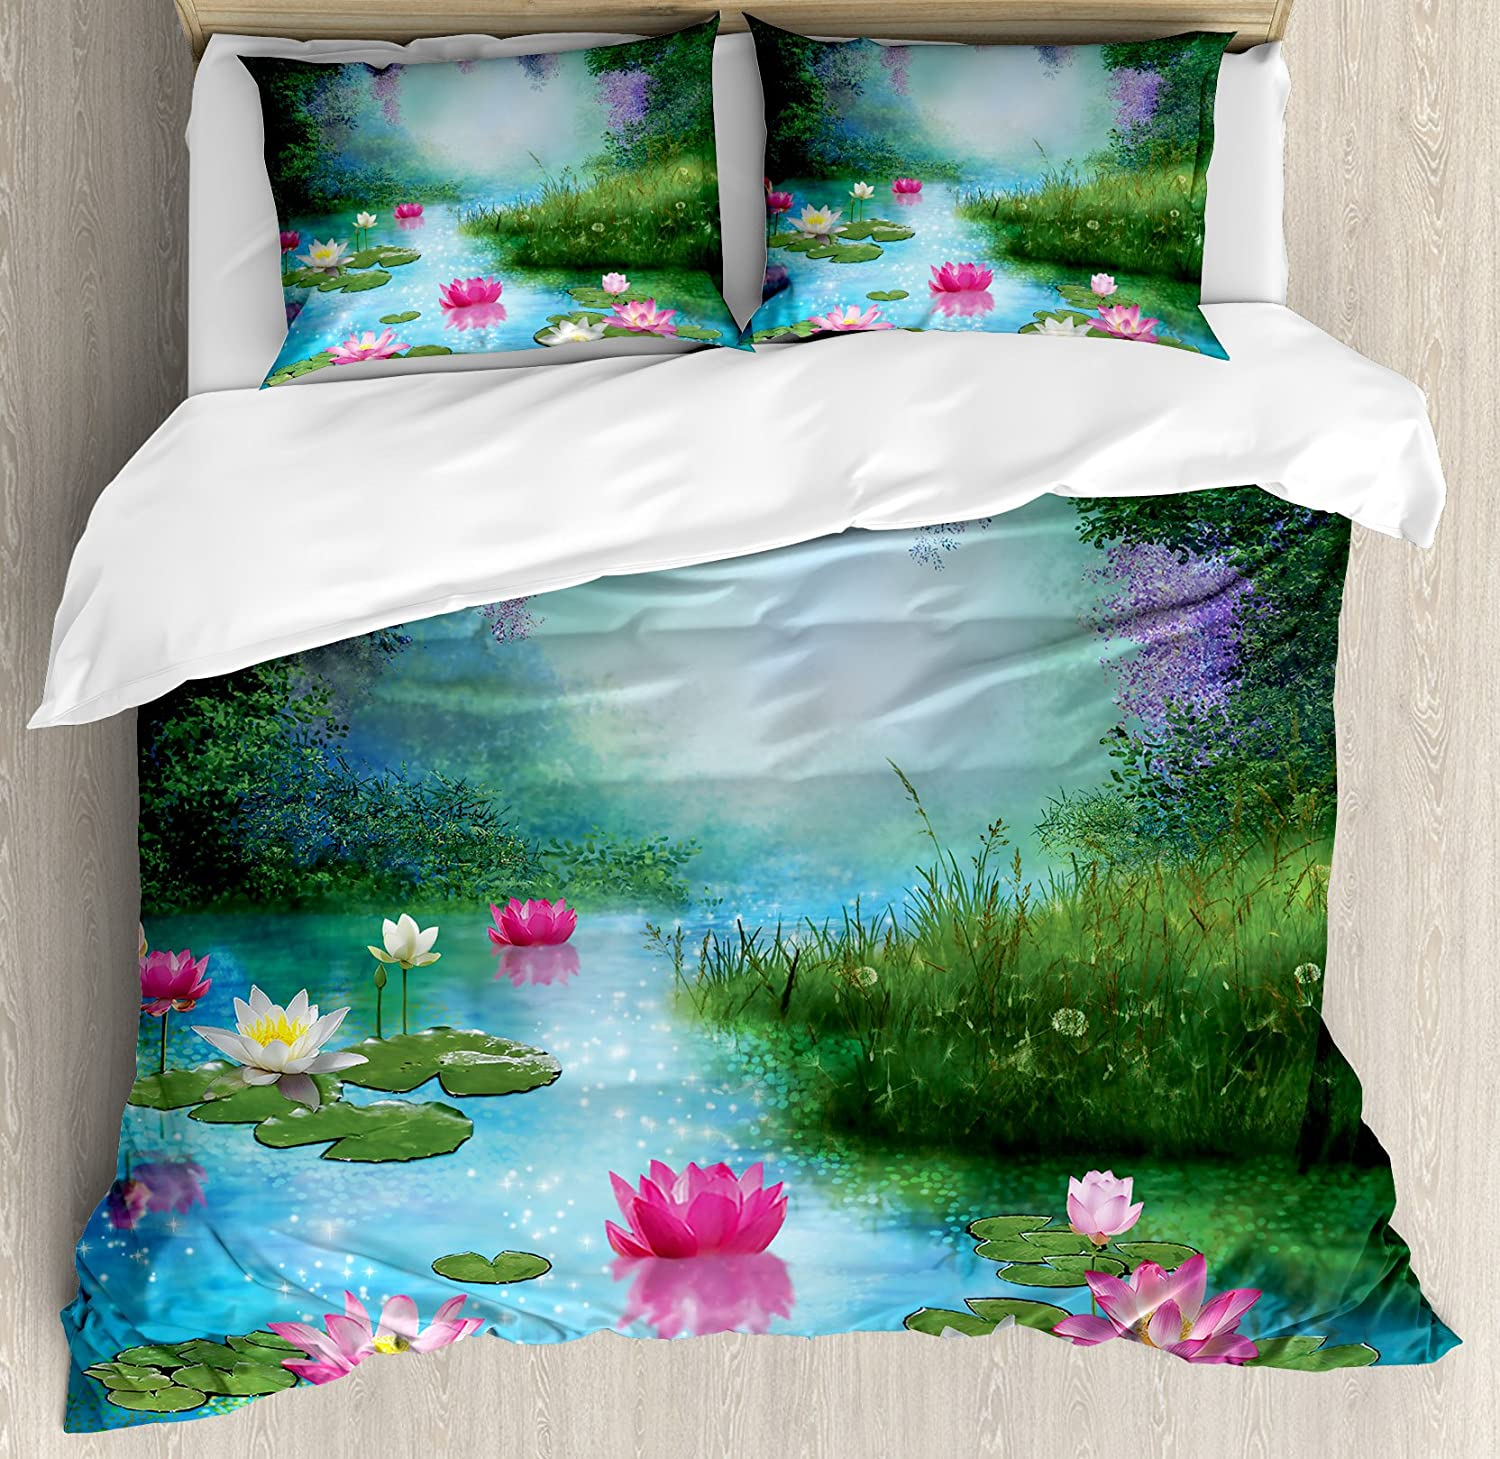 Ambesonne Nature Duvet Cover Set, Fantasy Pond with Water Lilies Floating Romantic Lotus Fairy Tale Digital Art, Decorative 3 Piece Bedding Set with 2 Pillow Shams, Queen Size, Aqua Pink